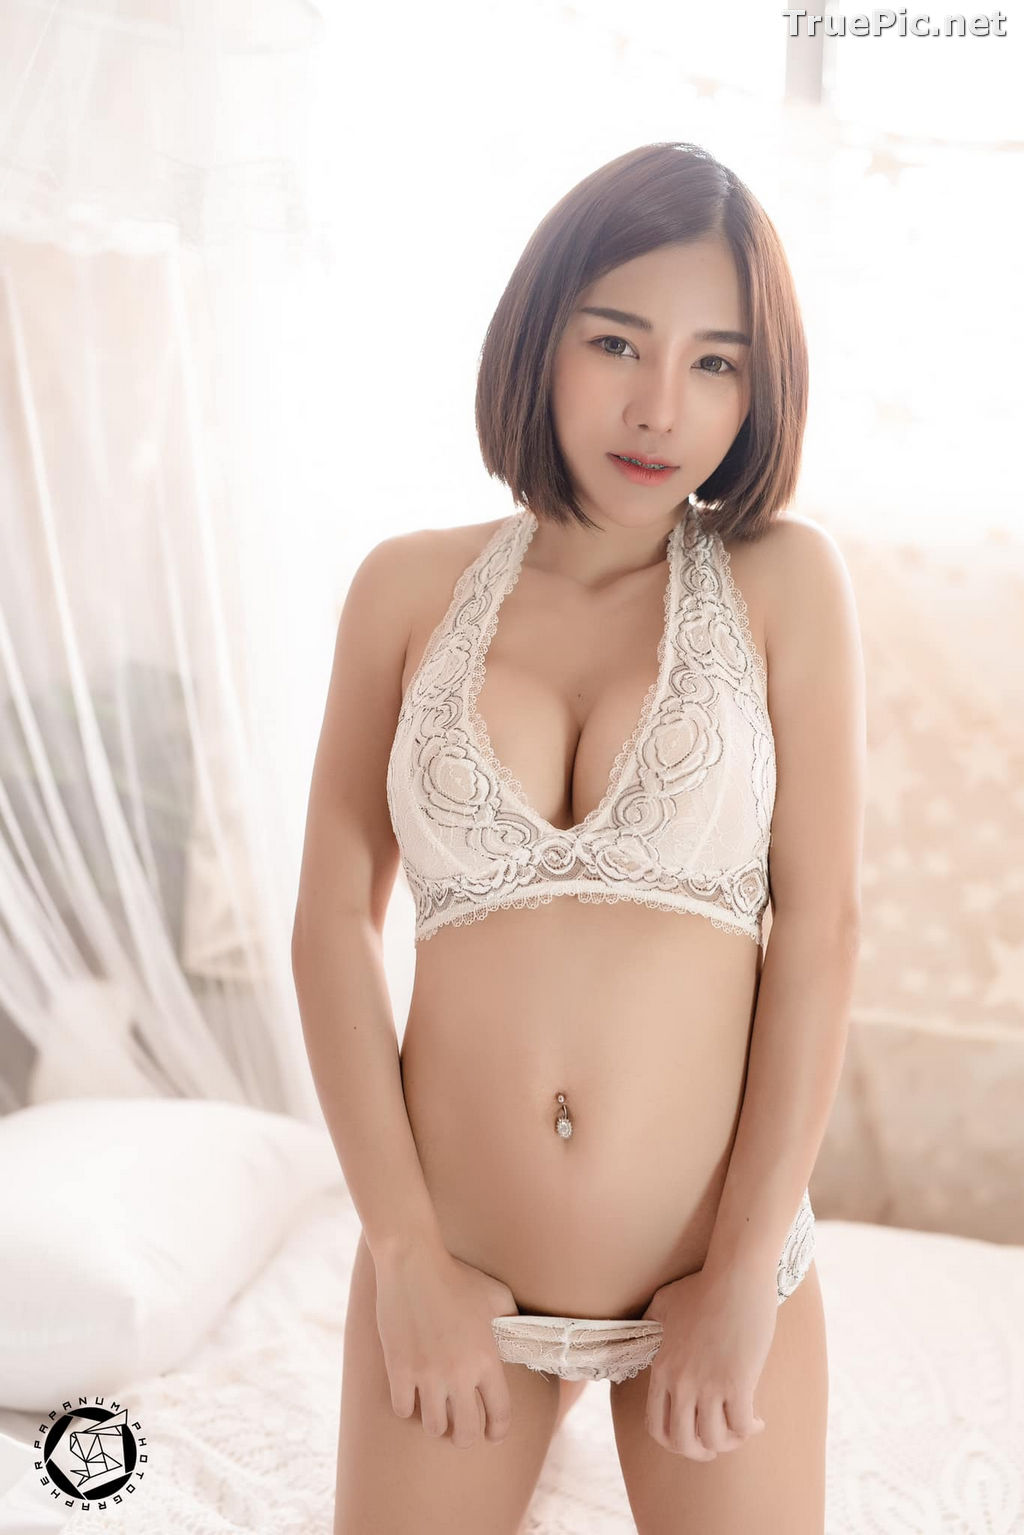 Image Thailand Model - Papoy Kuanpradit - Sexy White Lingerie - TruePic.net - Picture-20